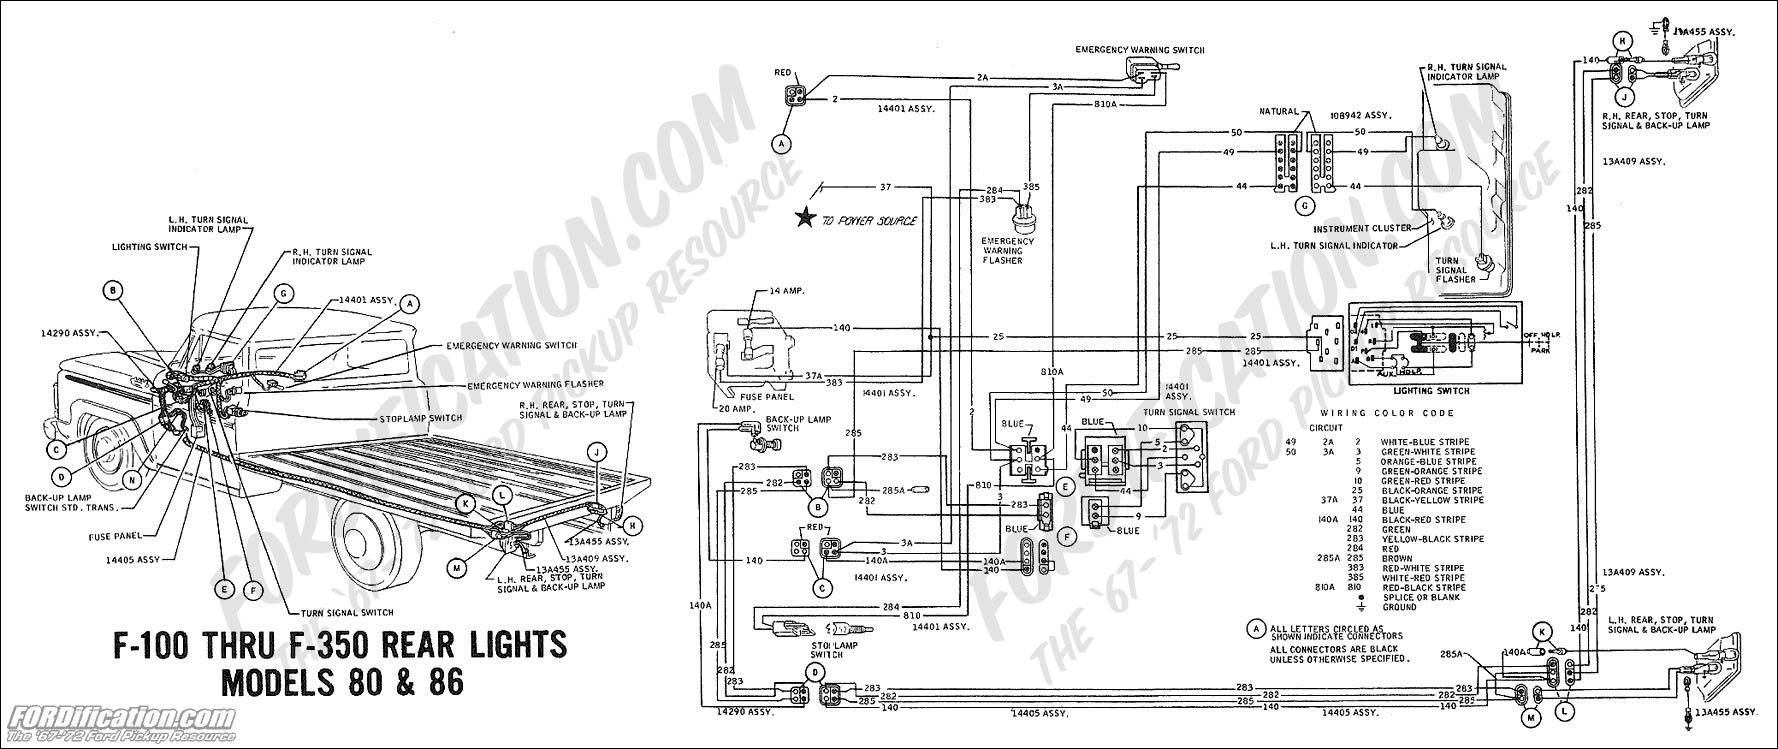 wiring_69rearlights mdls80 86 ford truck technical drawings and schematics section h wiring 2013 Ford F350 Wiring Diagram at mifinder.co